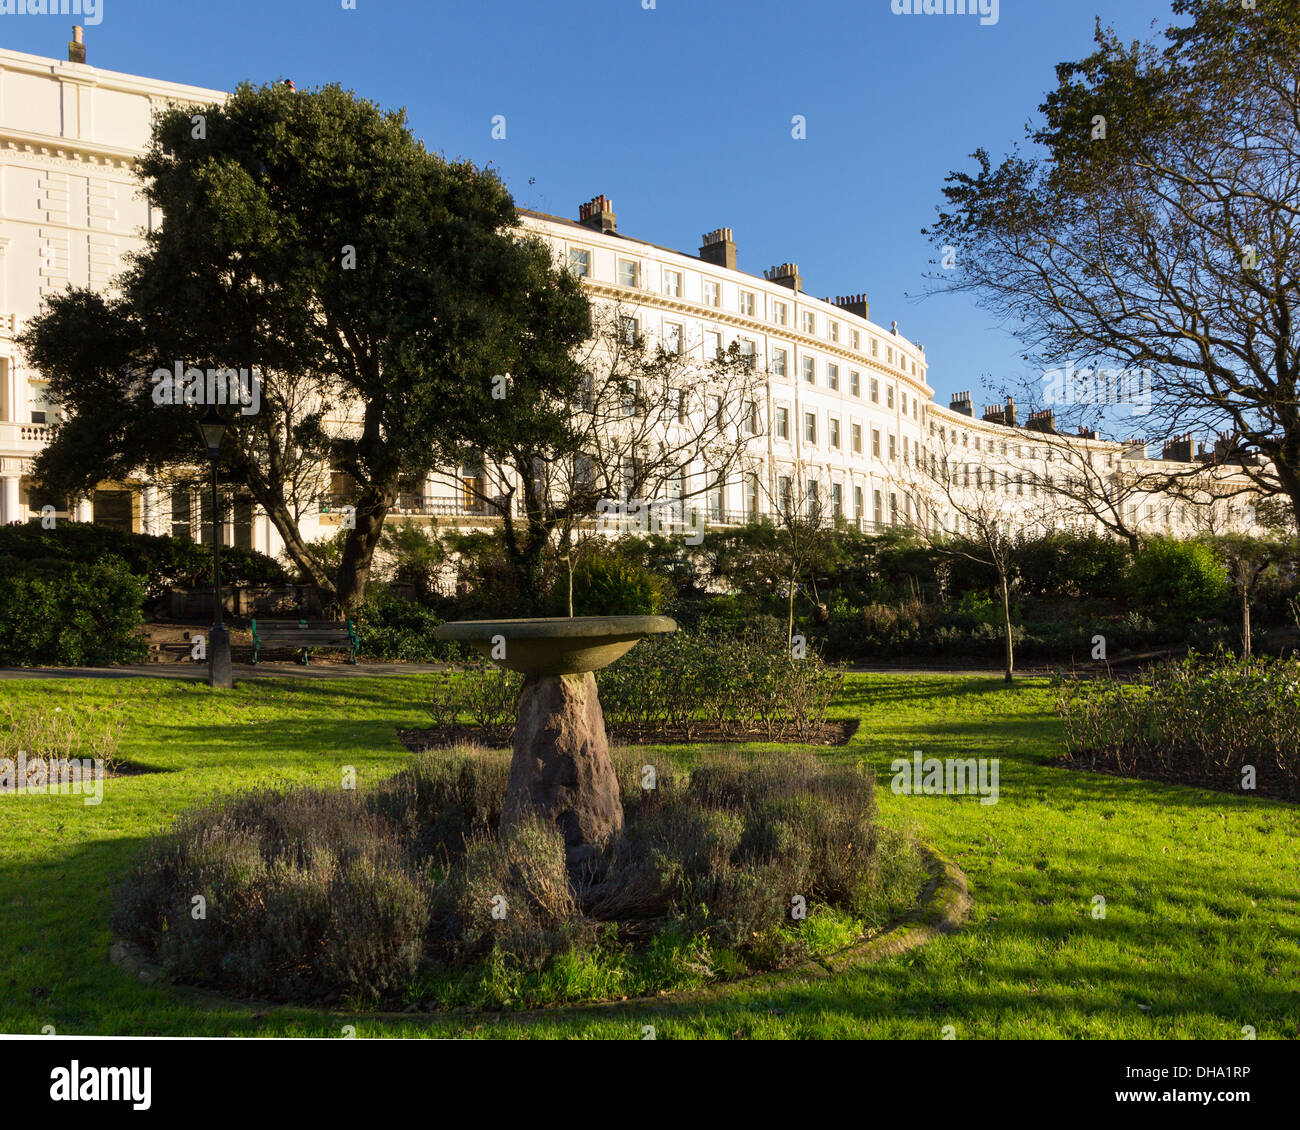 Hove, East Sussex, UK - 4 Nov 2013: Curved terraces of fine architecture in Palmeira Square, Brighton and Hove - Stock Image